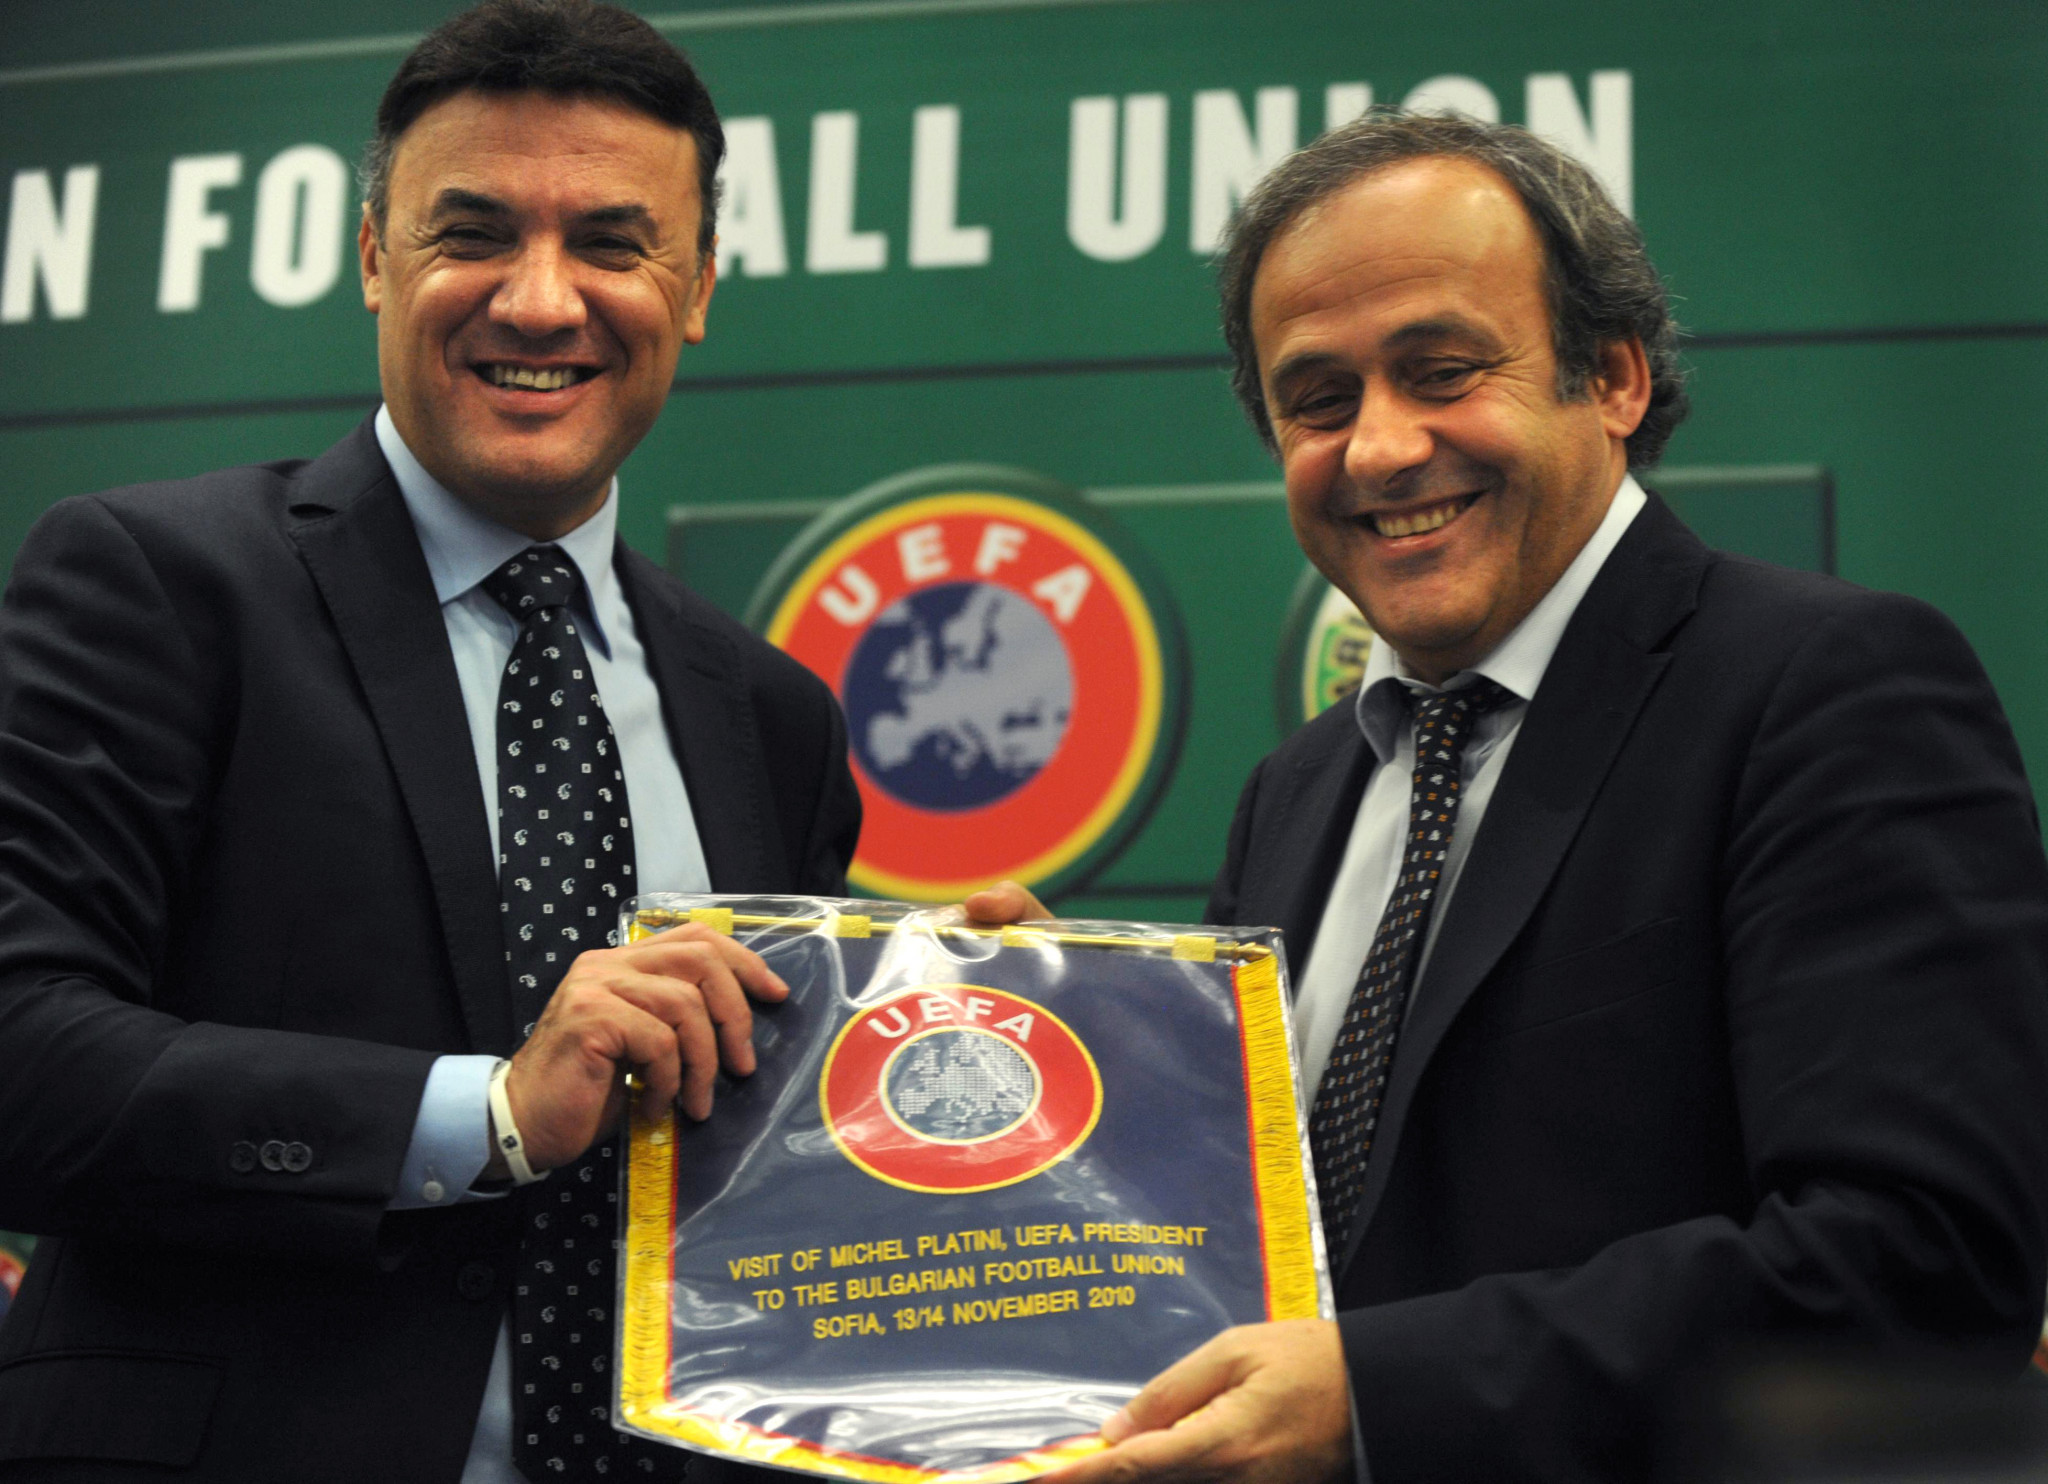 Bulgaria Football Union President resigns after racism blights England qualifier